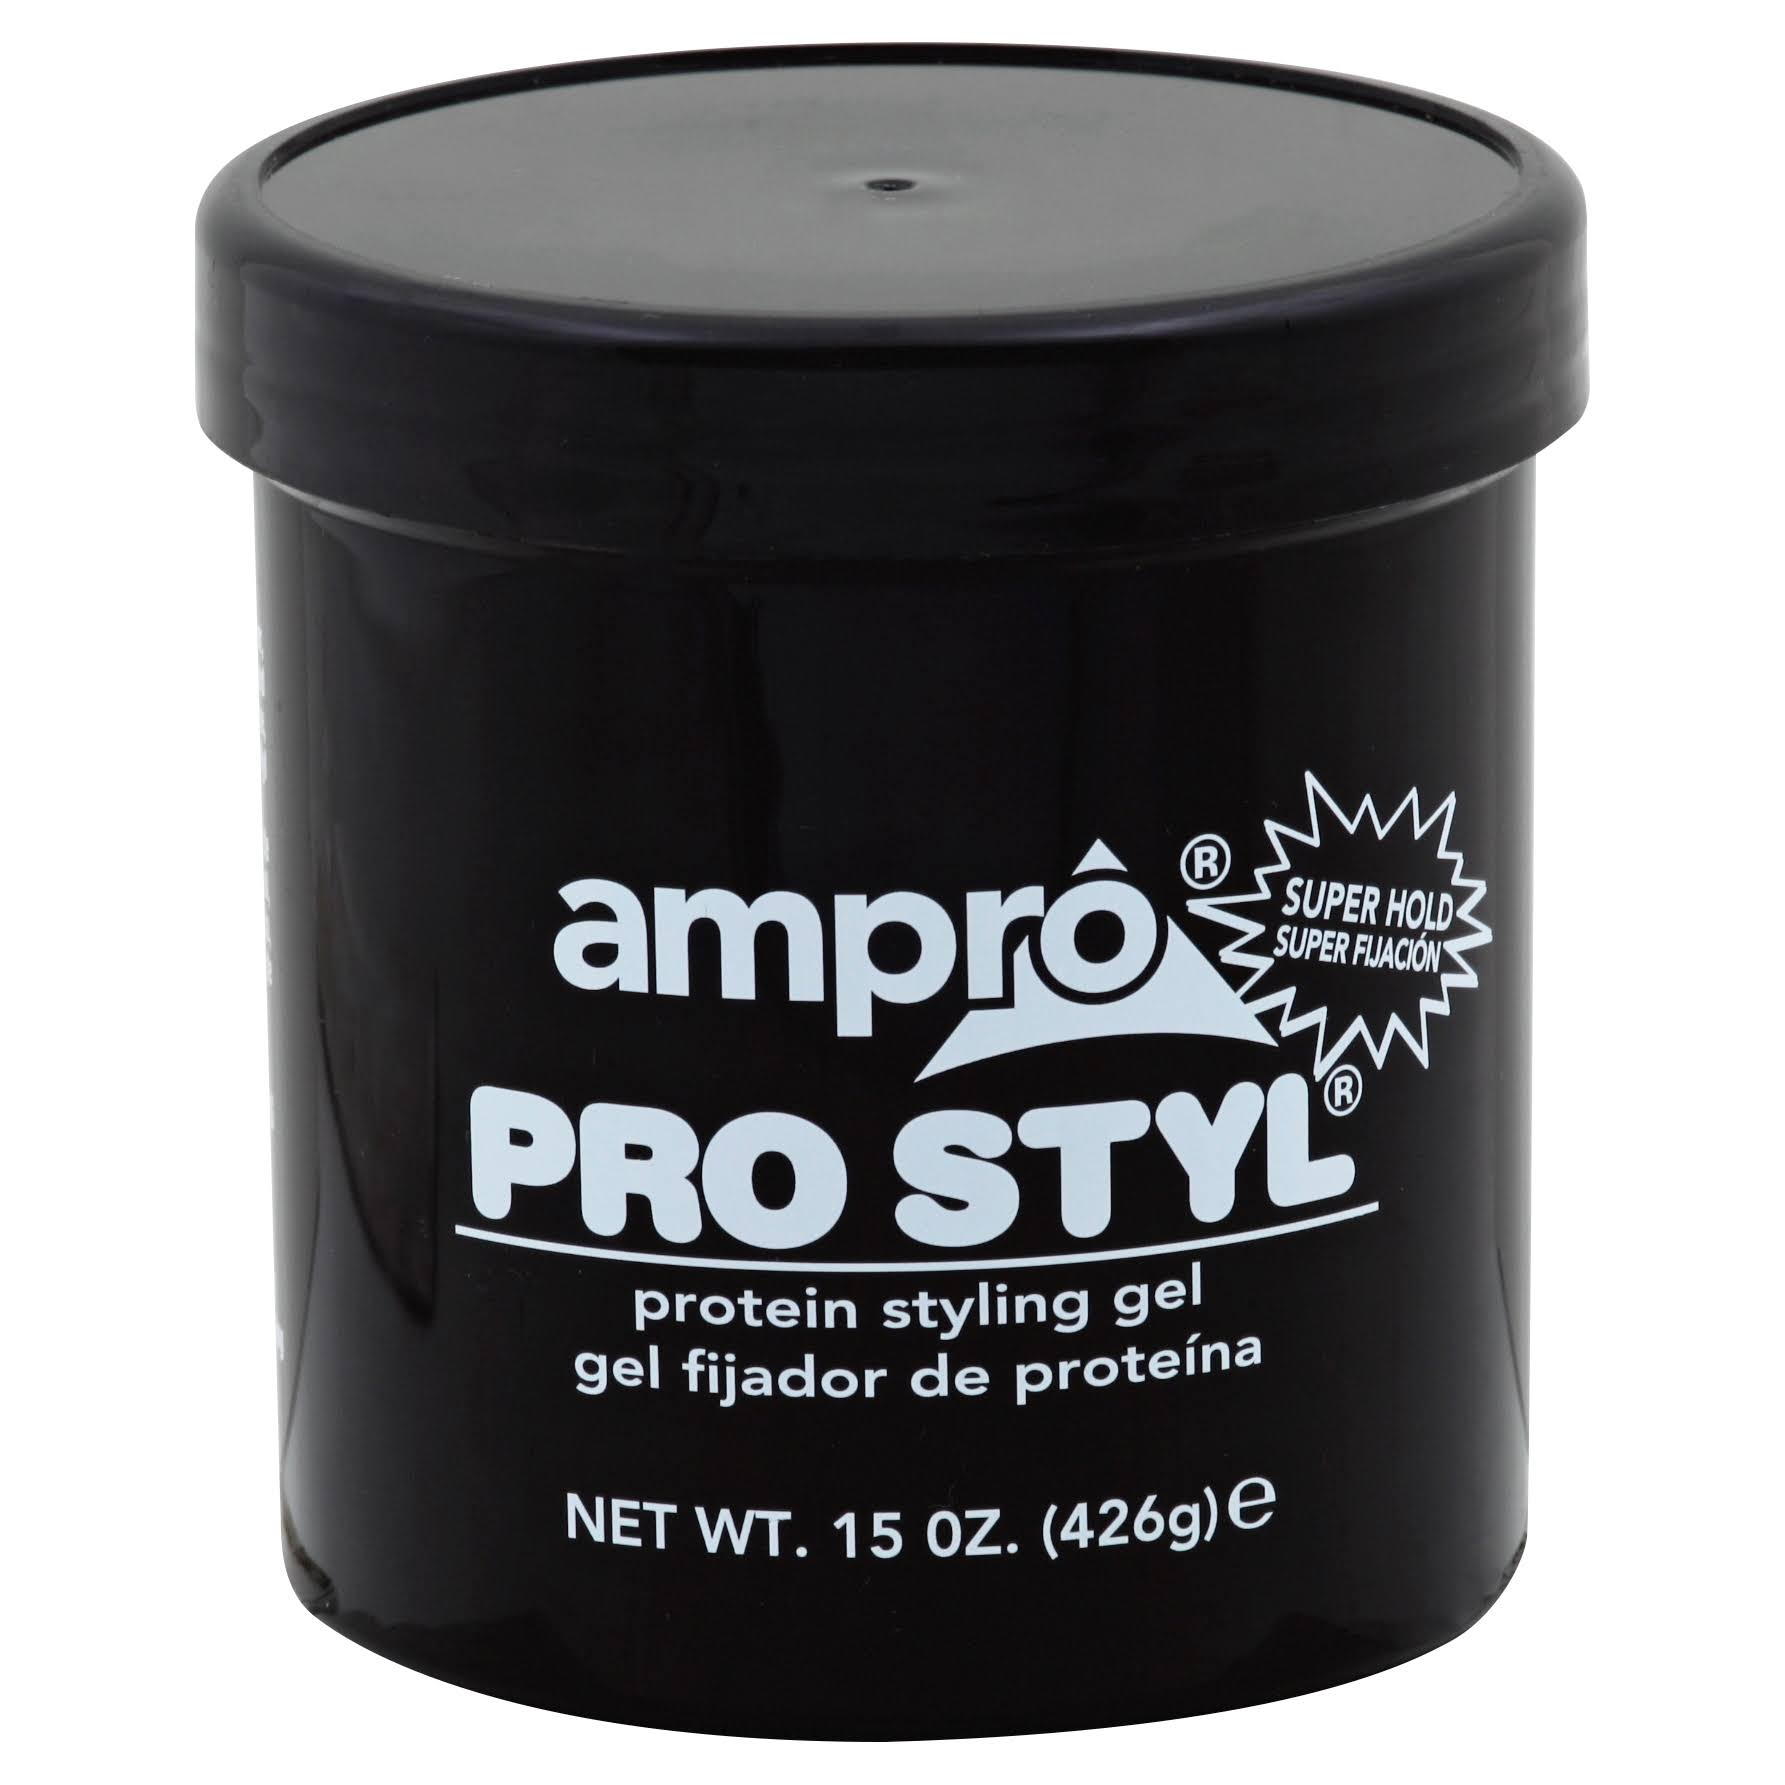 Ampro Pro Styl Super Hold Protein Styling Gel - 15oz